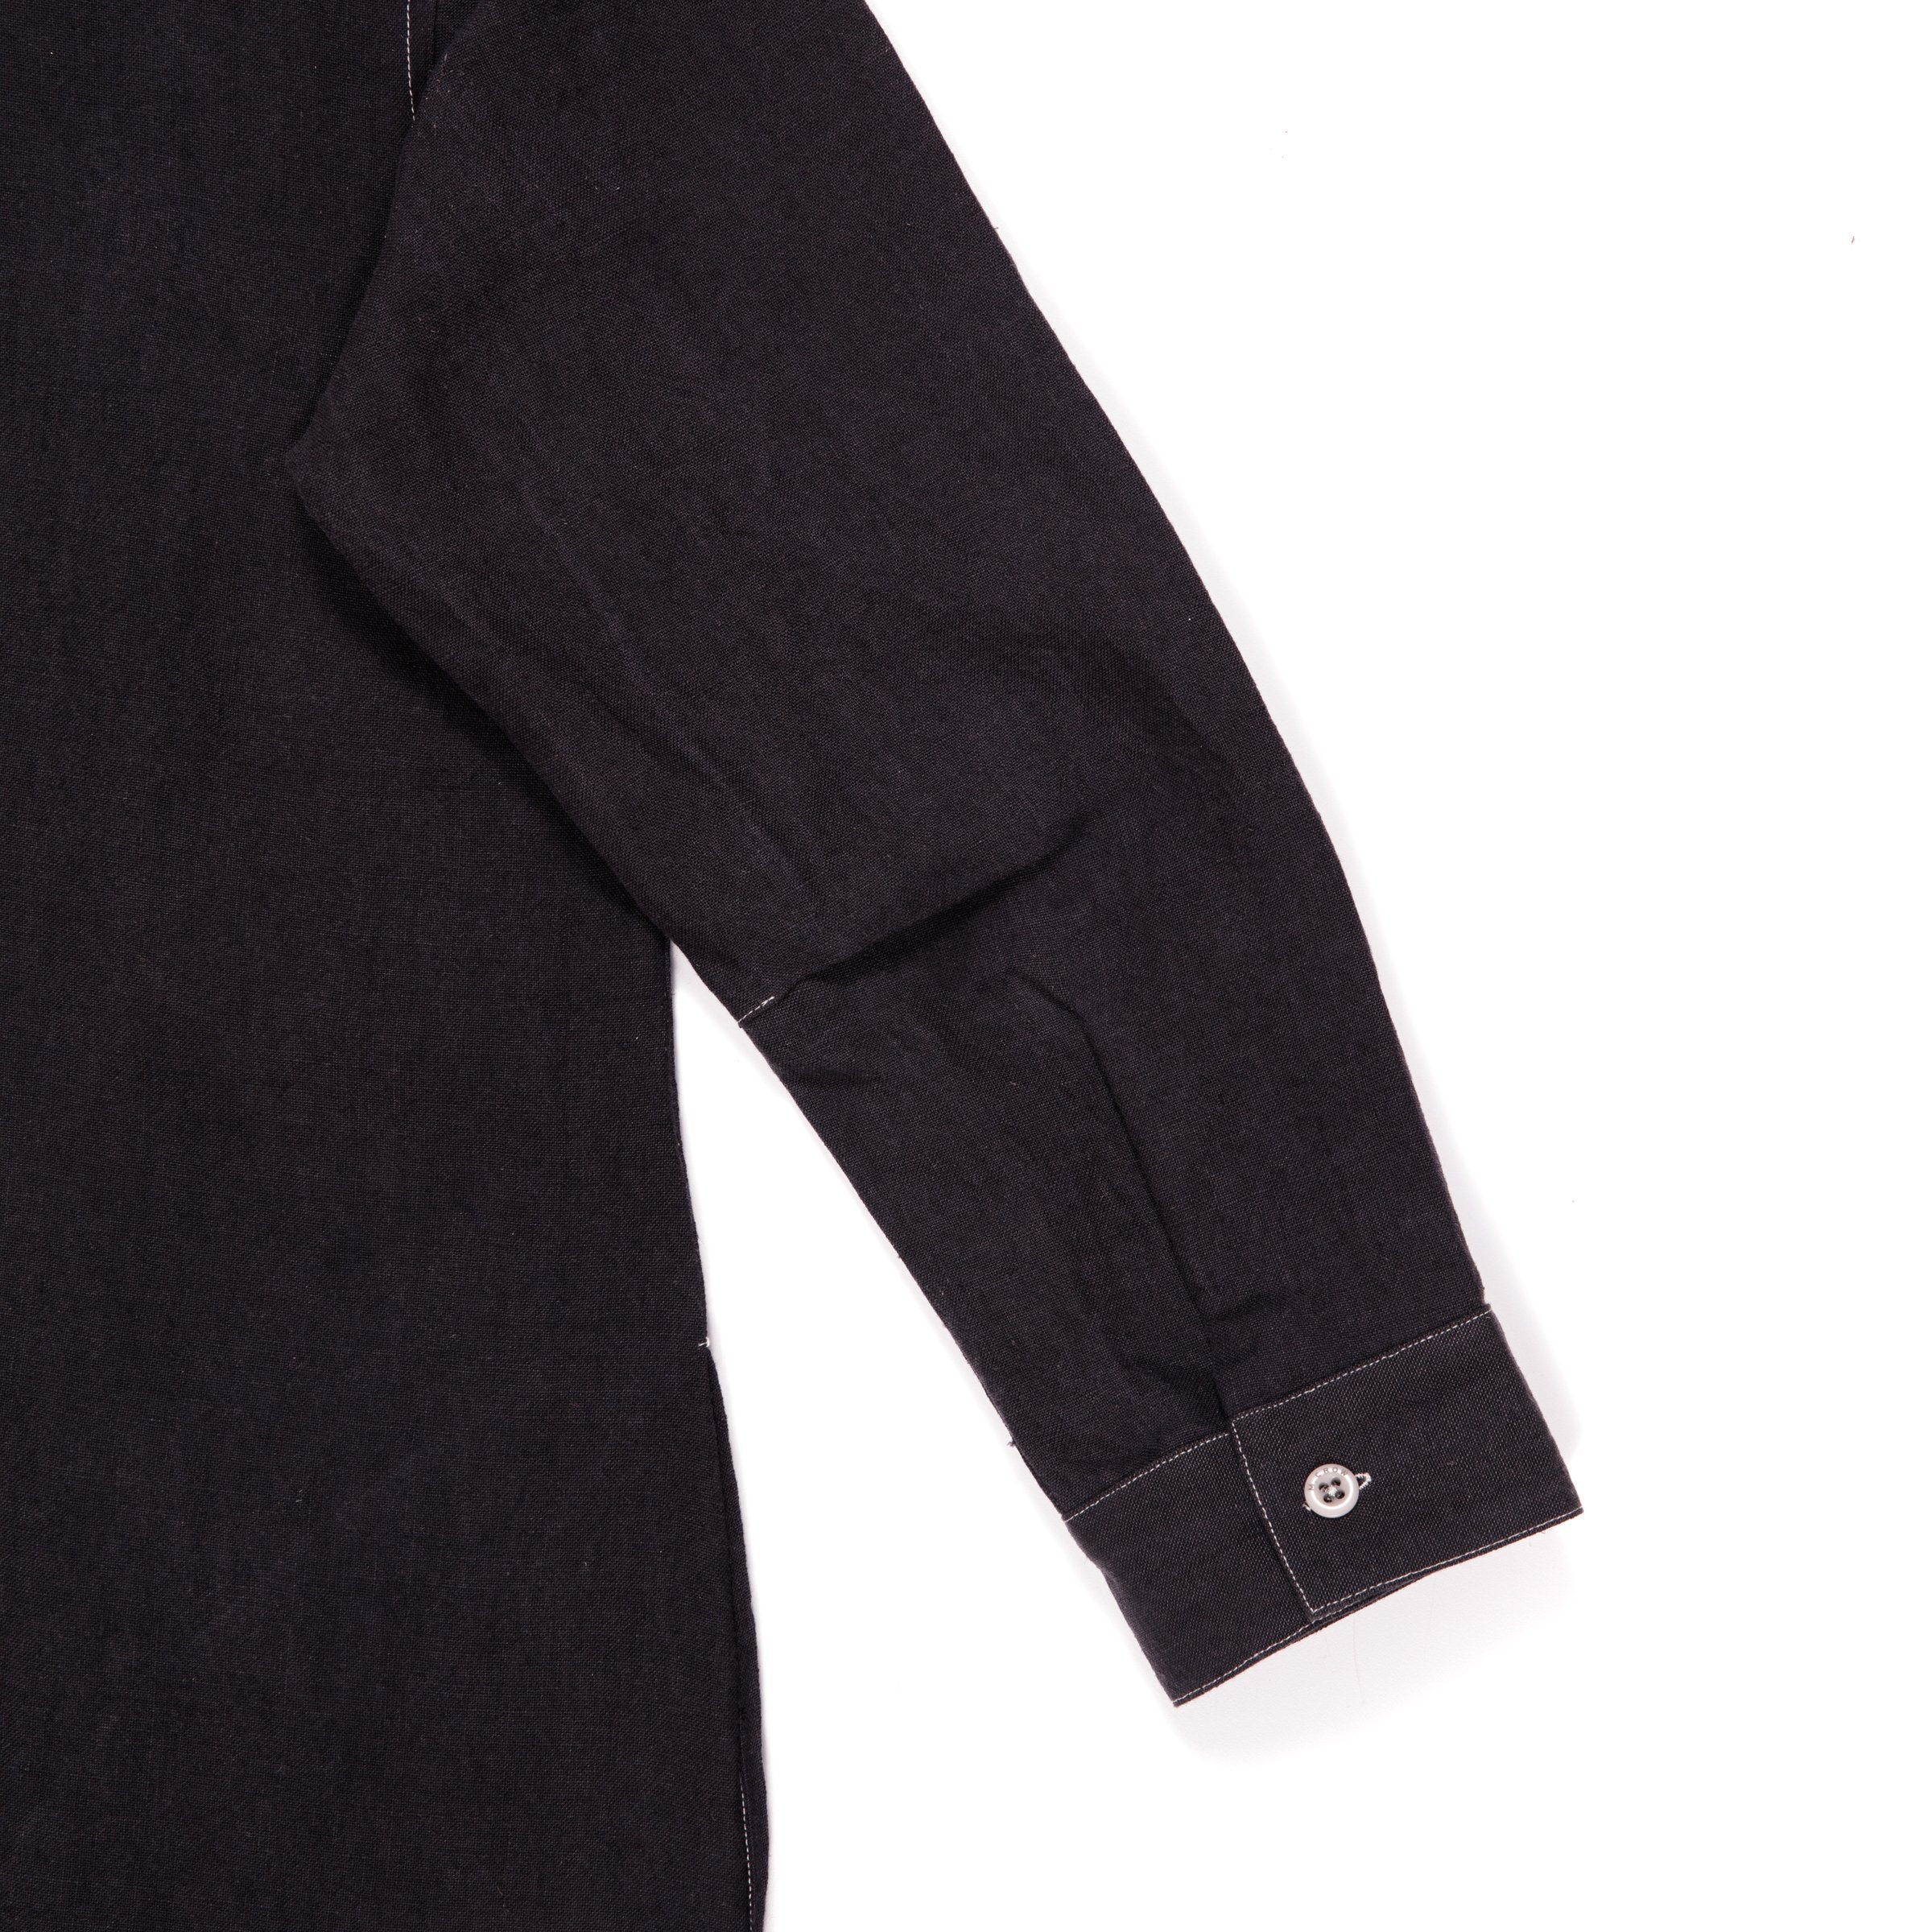 BLACK LINEN WITH STONE TOPSTITCH